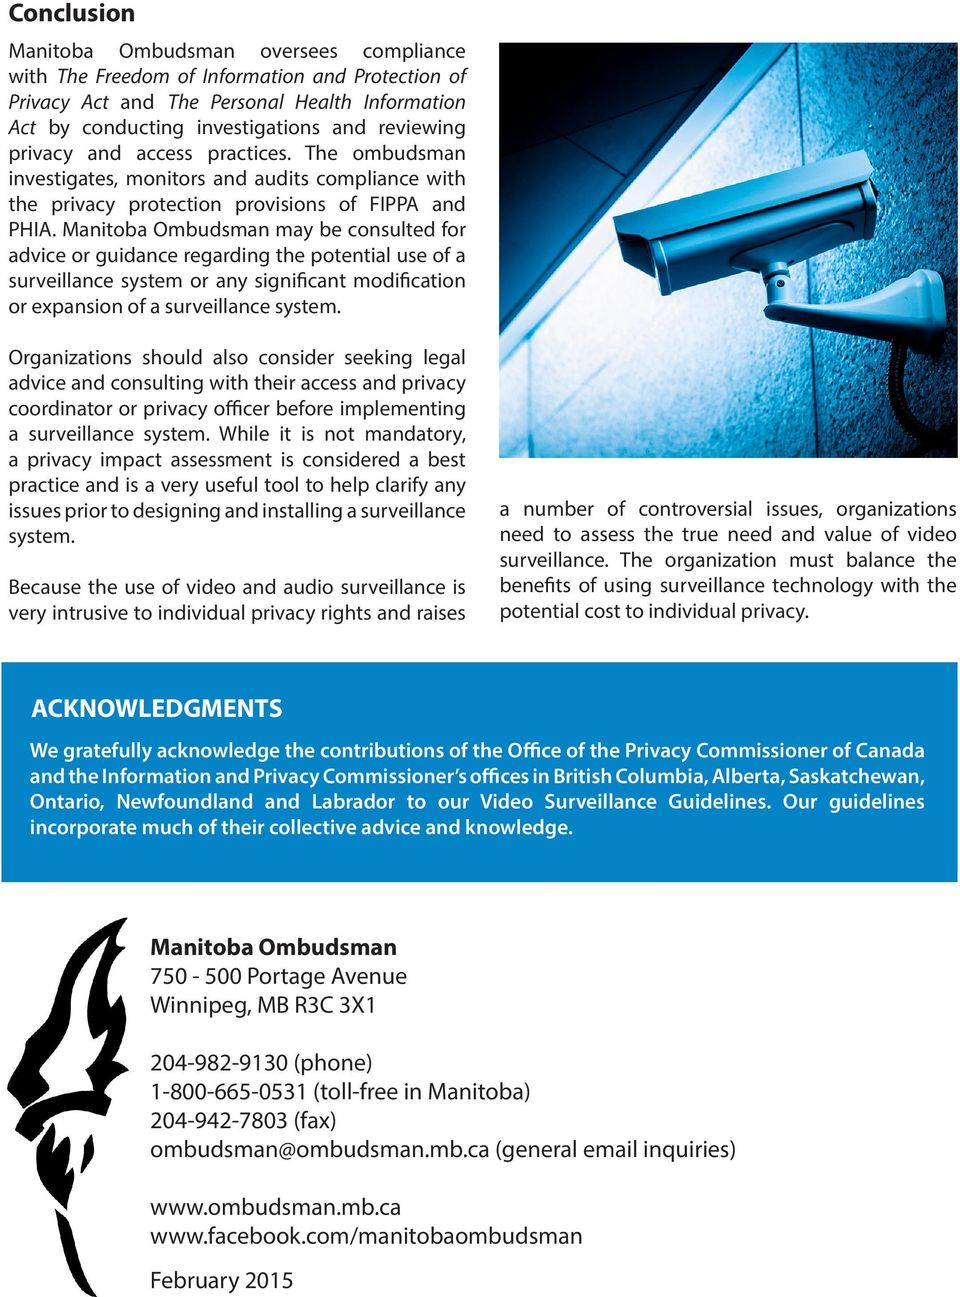 Manitoba Ombudsman may be consulted for advice or guidance regarding the potential use of a surveillance system or any significant modification or expansion of a surveillance system.